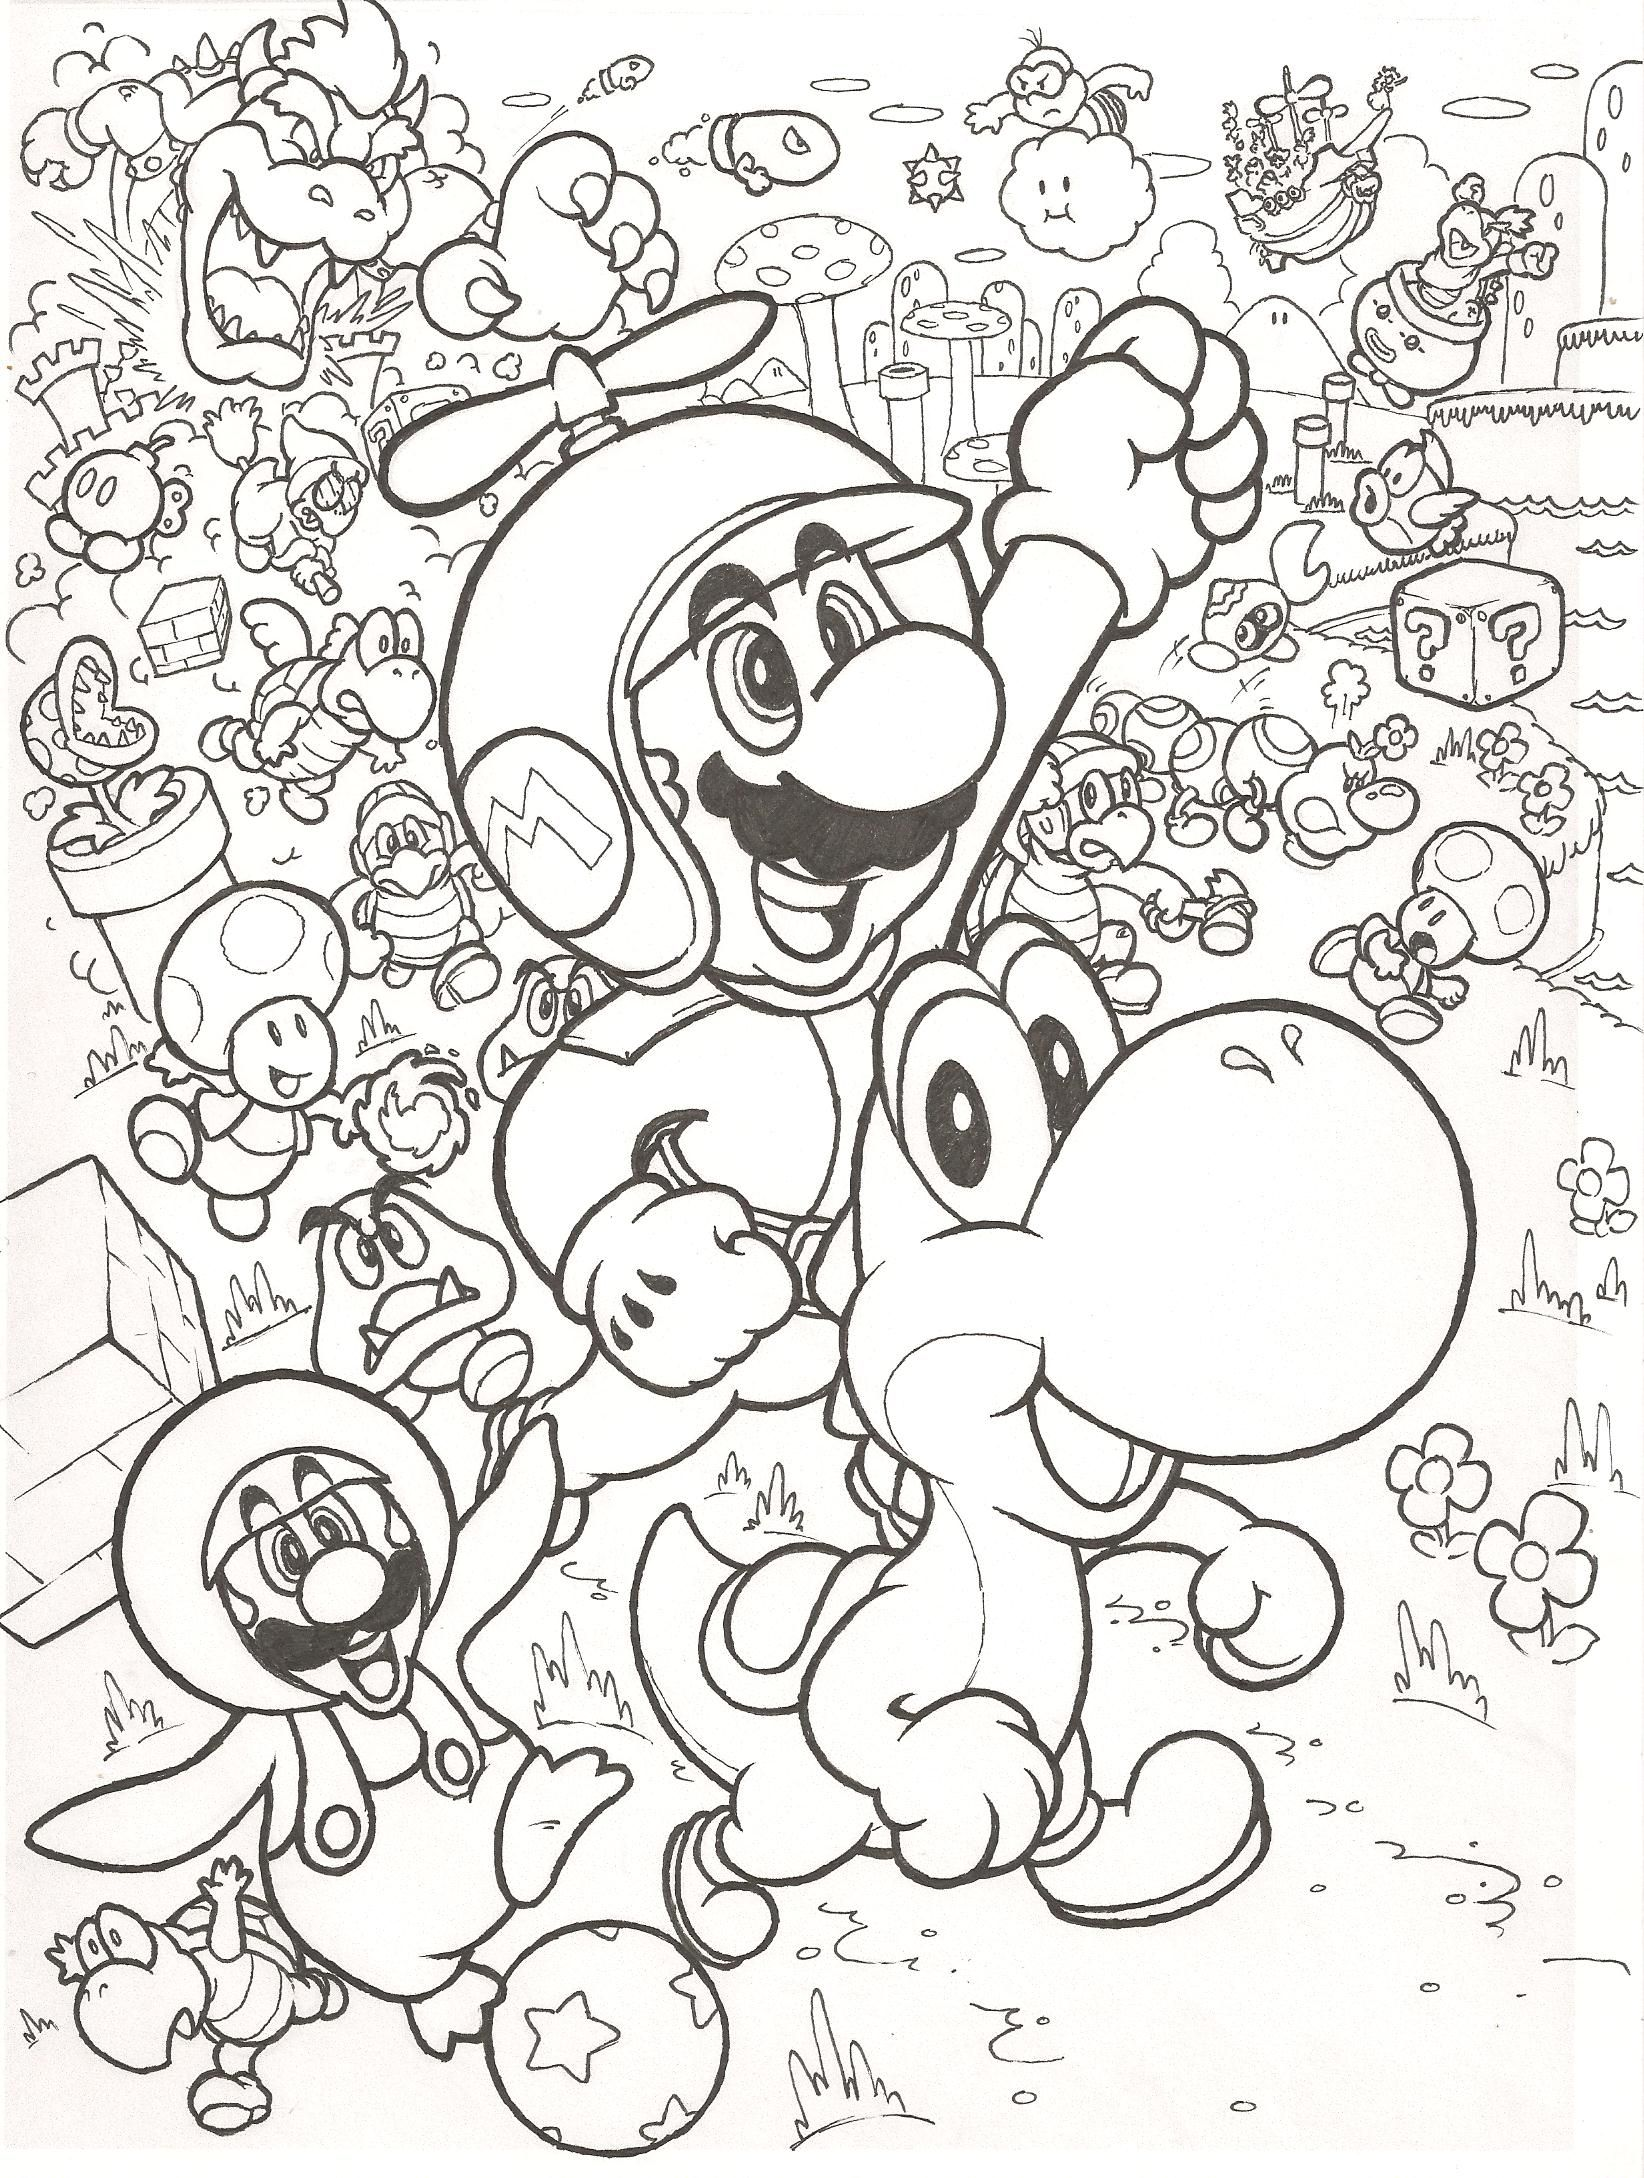 super mario bros coloring pages Free Large Images Kids